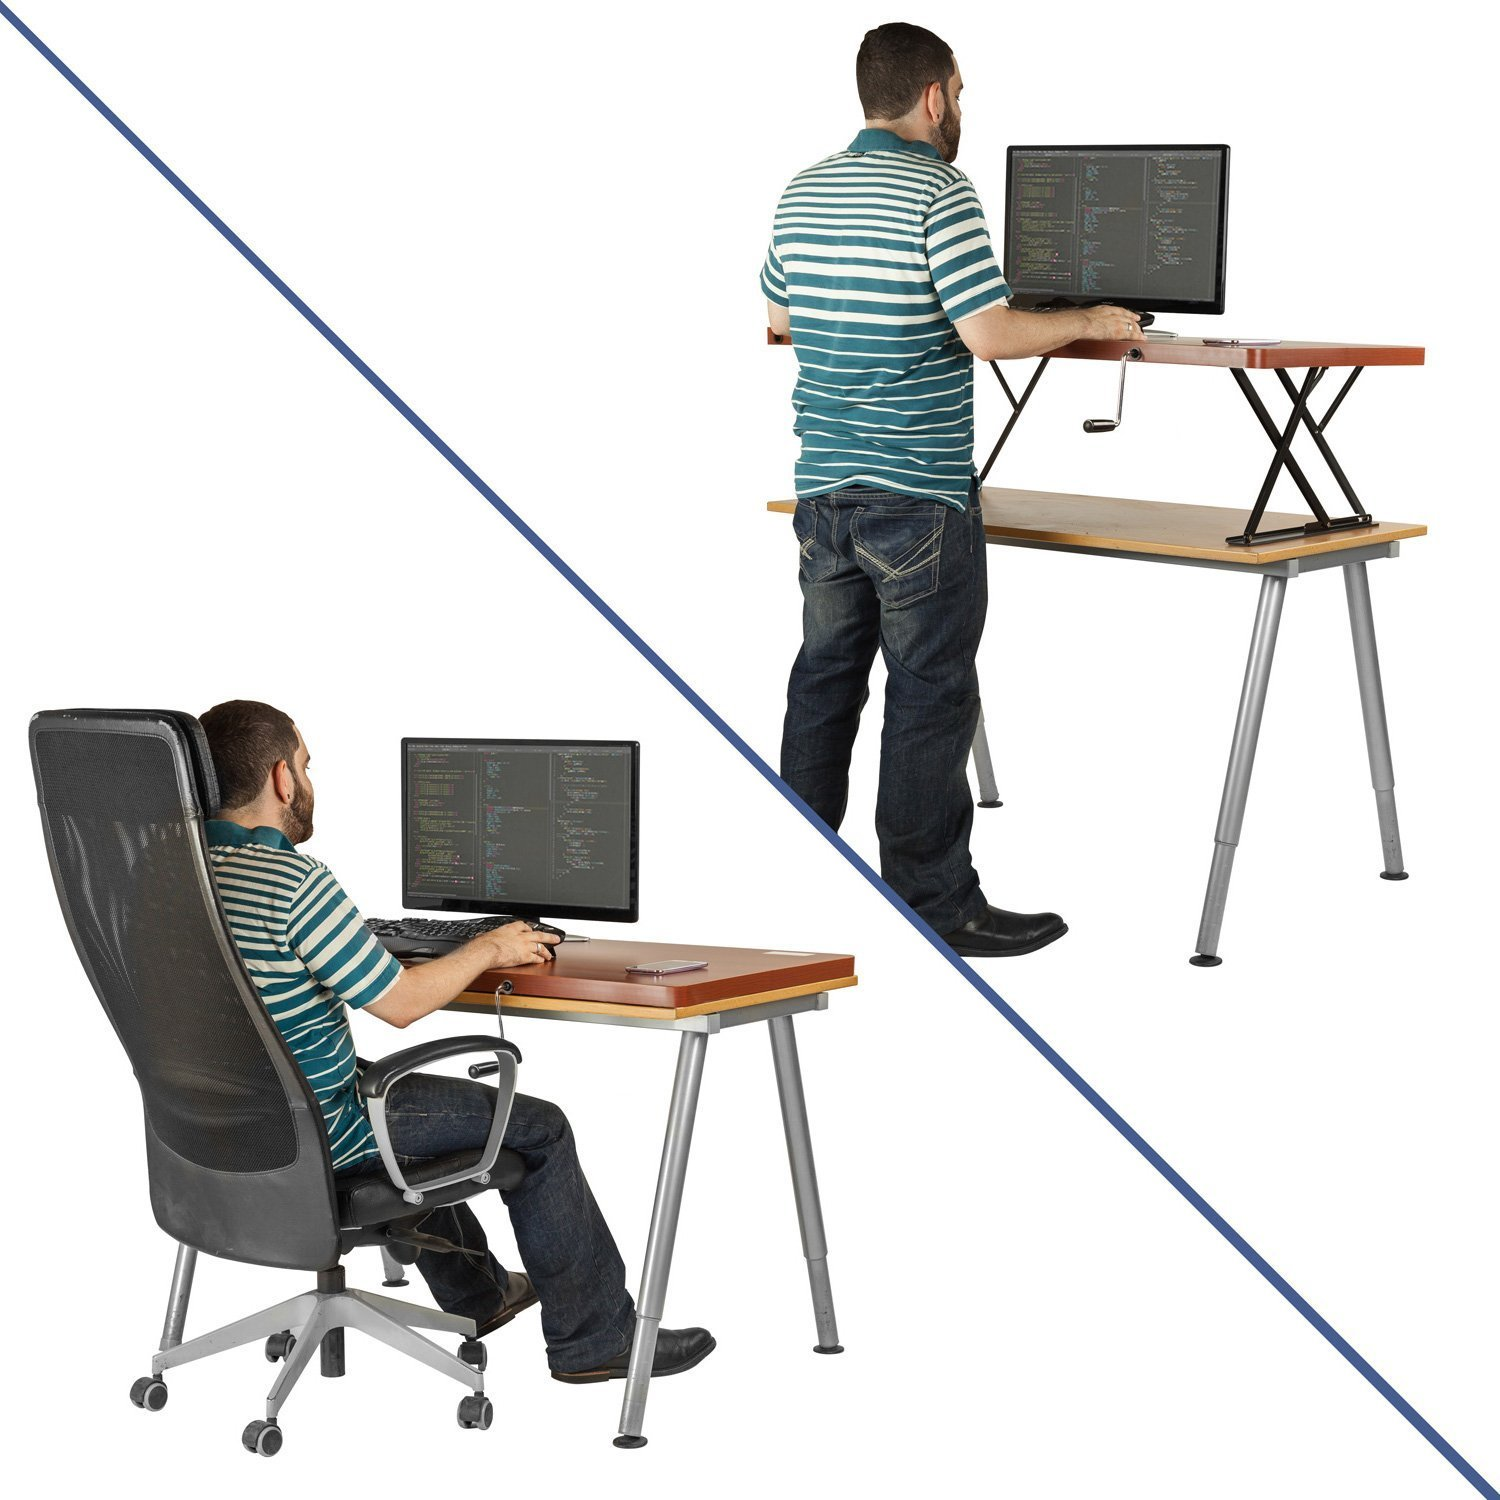 Amazon.com : Halter Manual Adjustable Height Table Top Sit / Stand Desk  (Cherry) : Office Products